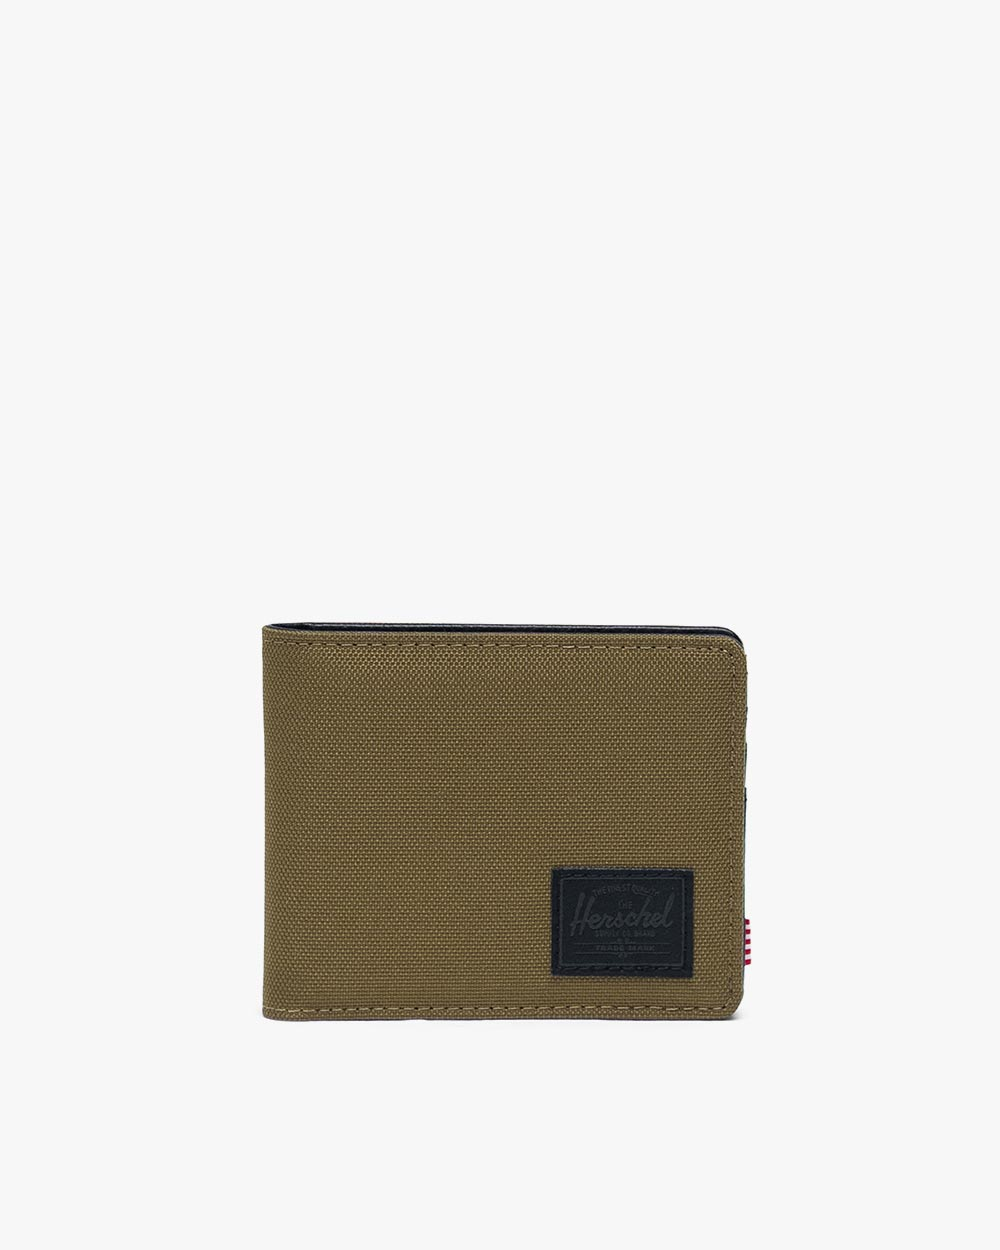 Wallets Category